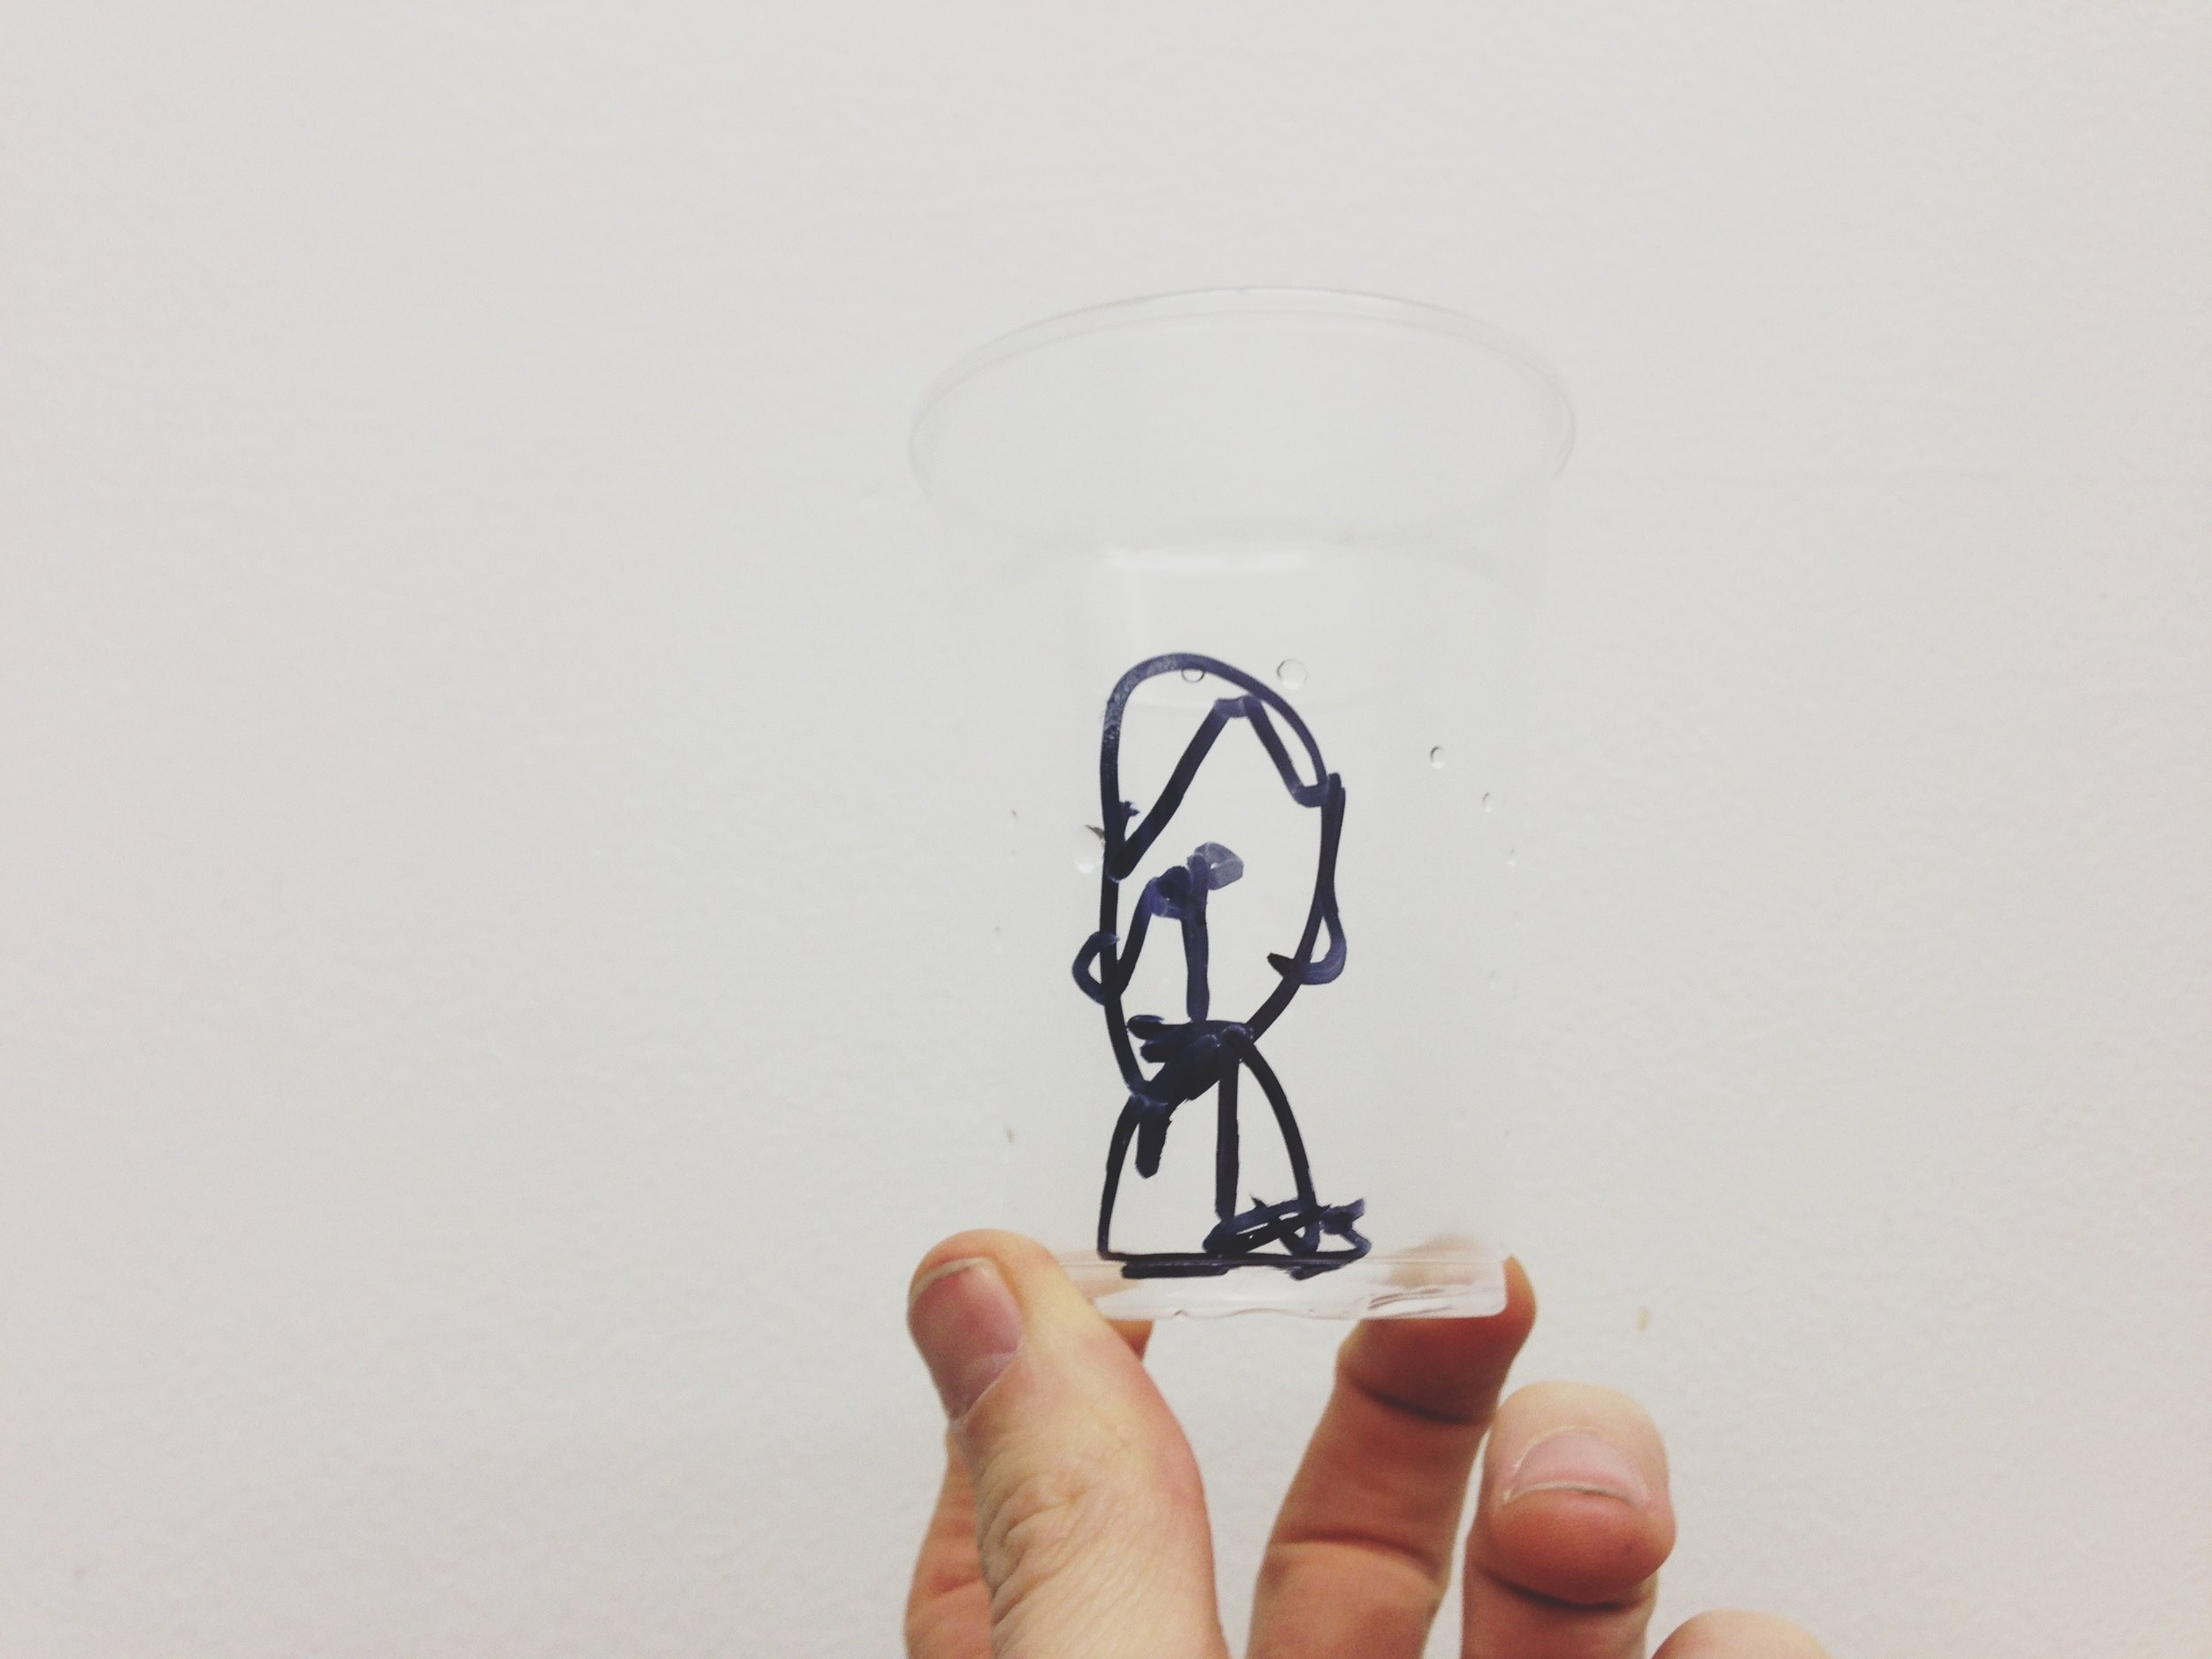 Ted James Butler   IMG_4407.jpeg / self portrait,  2011  permanent marker on disposable cup, digital photograph  3264 × 2448